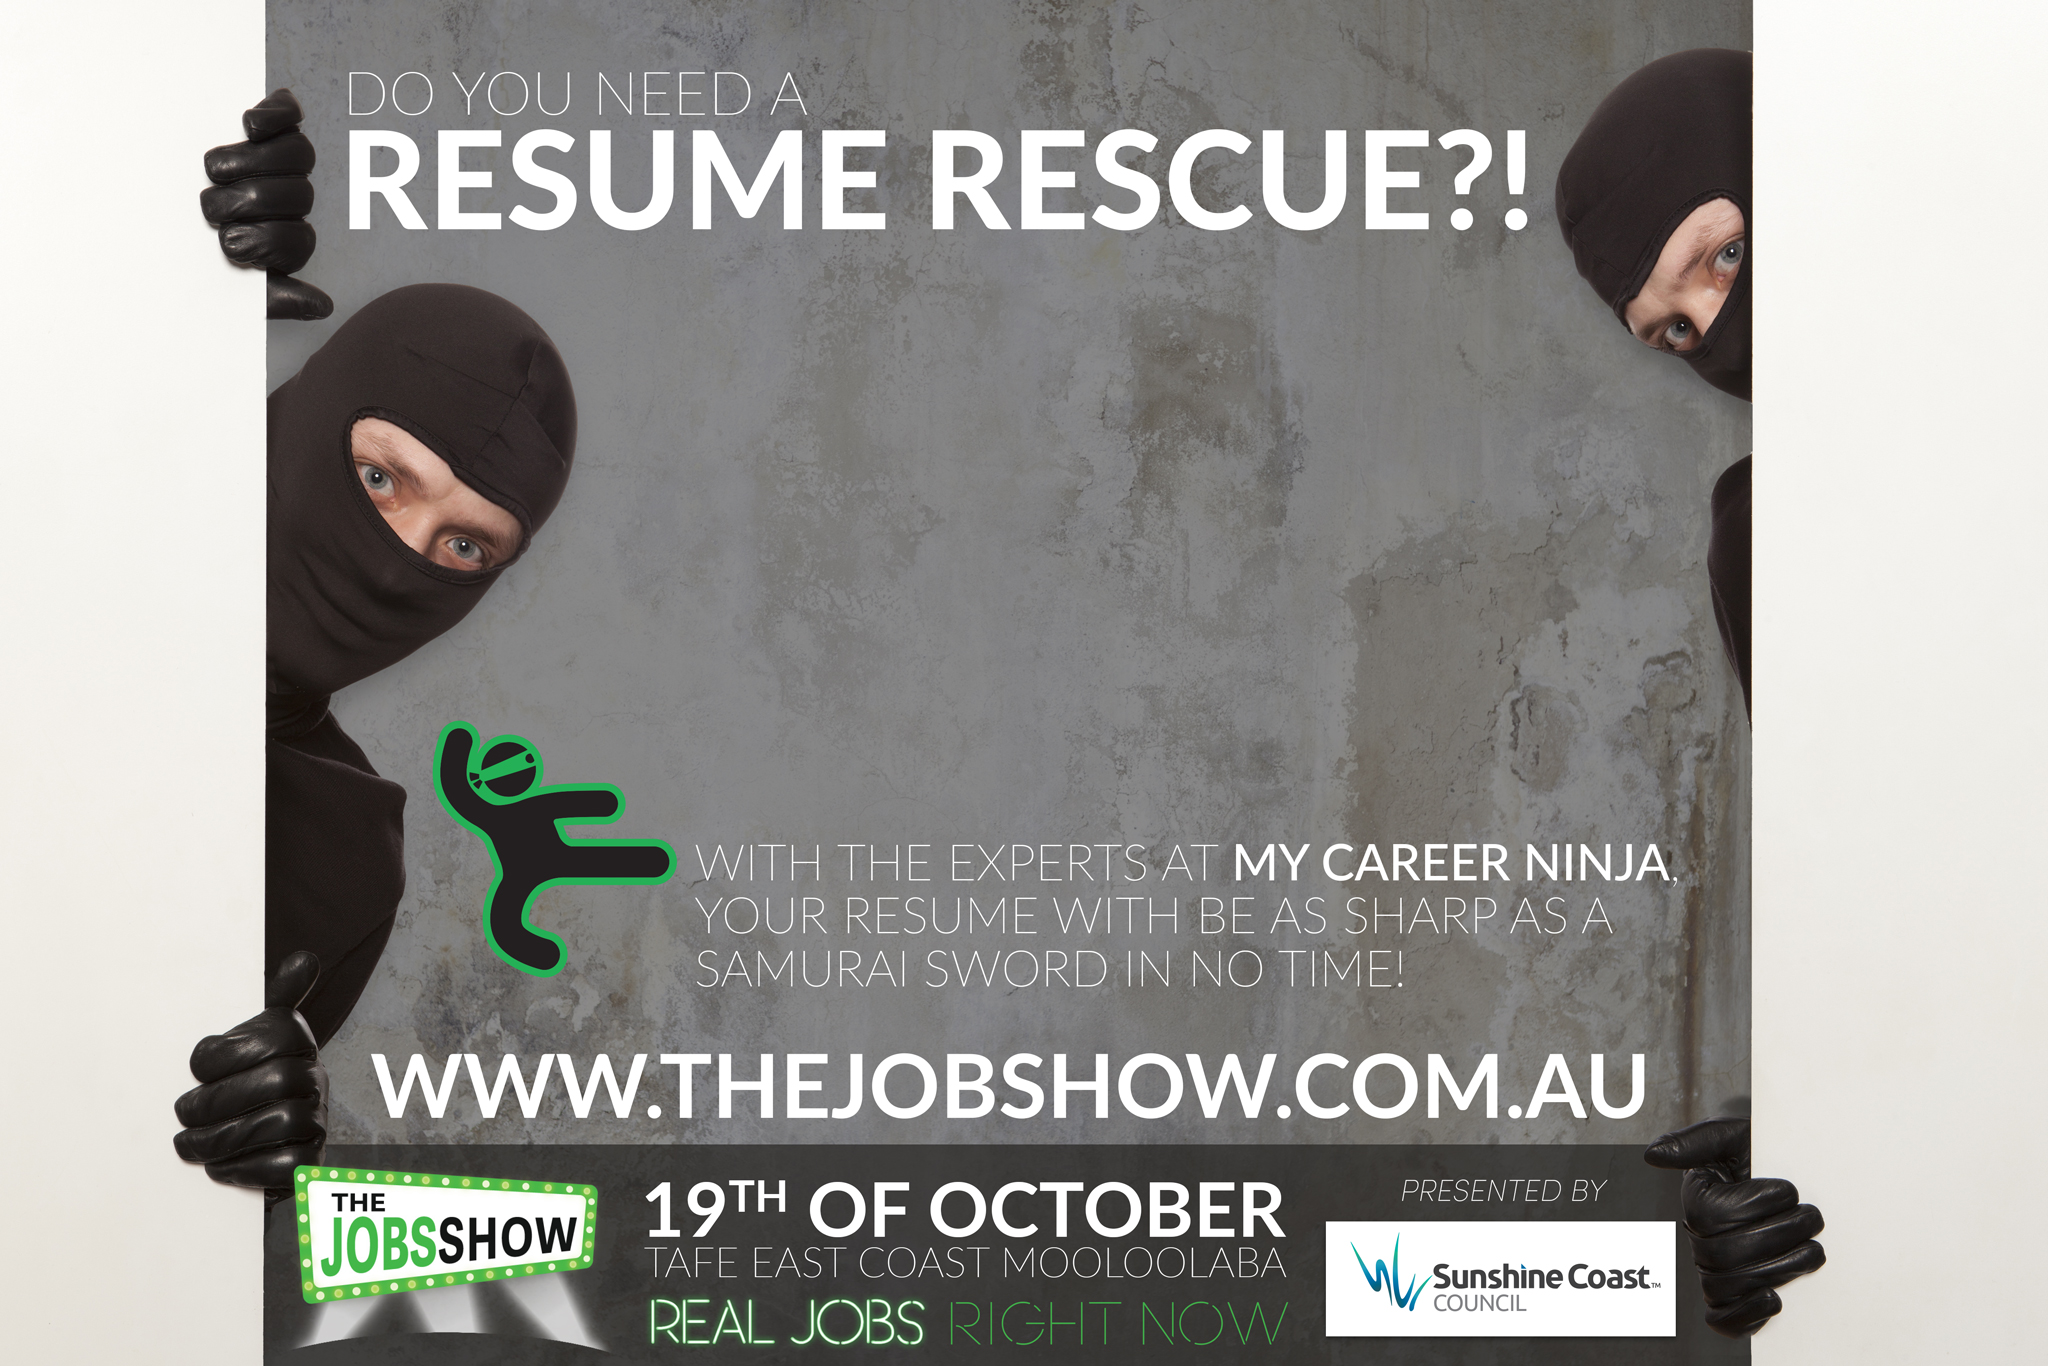 Sharpen your Resume with My Career Ninja!